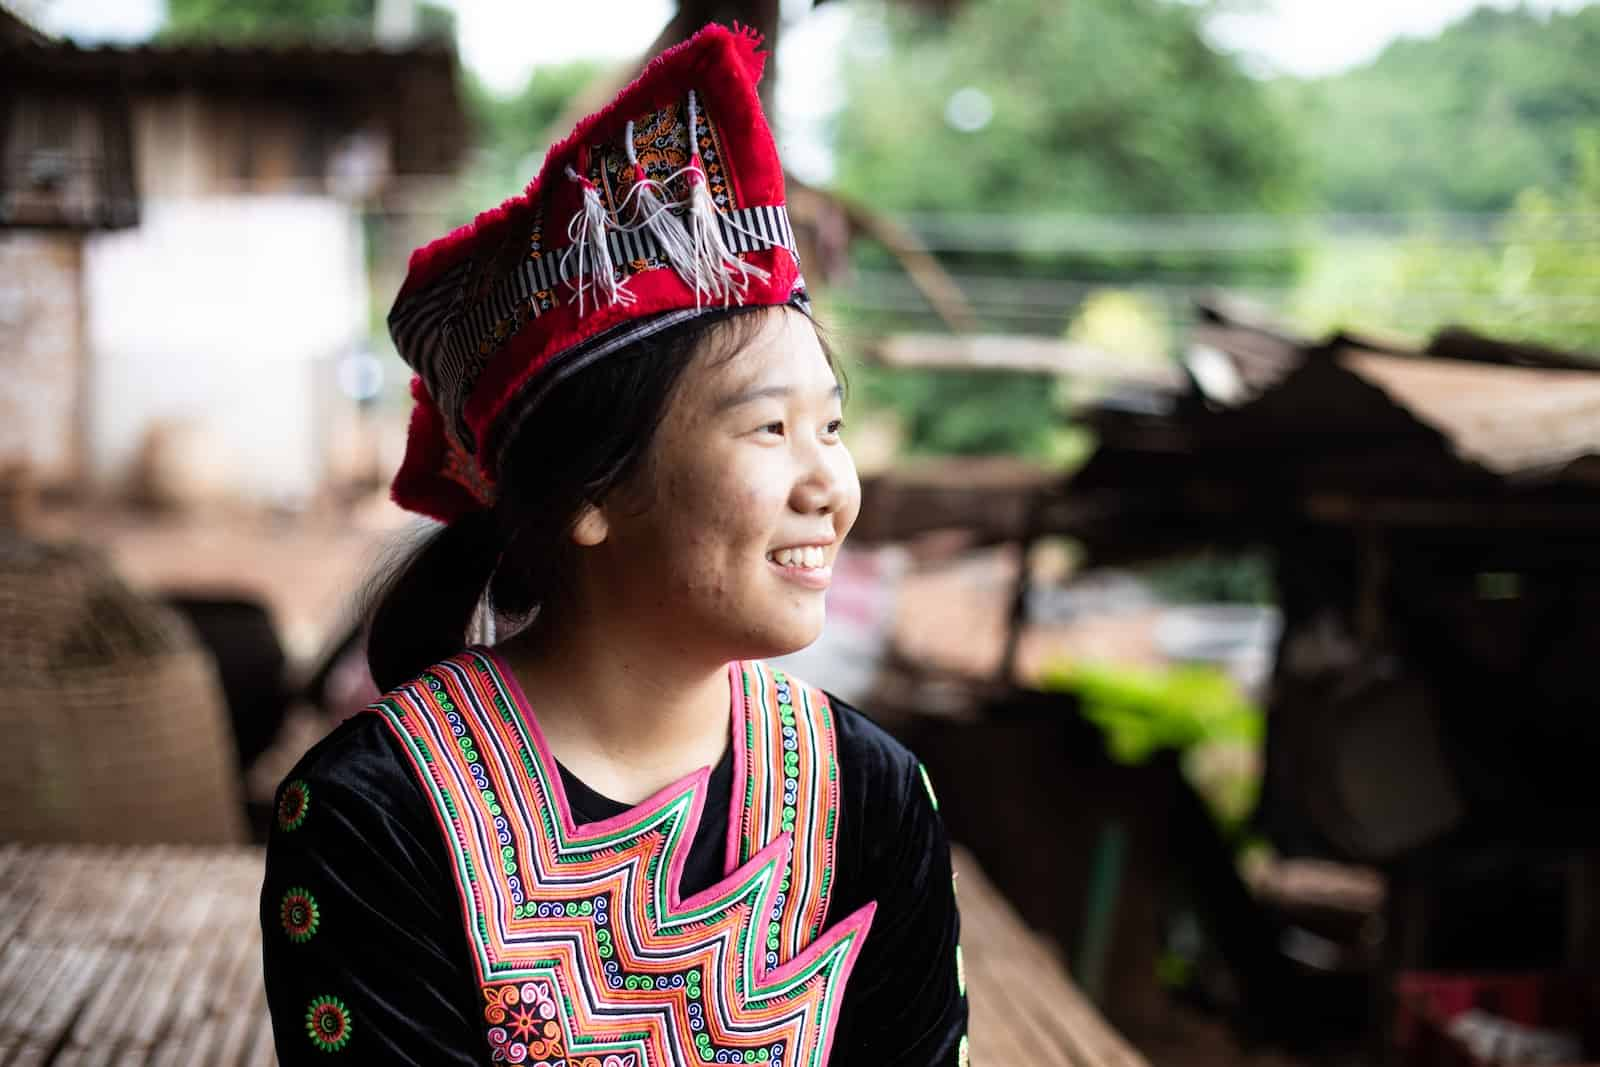 A girl wearing traditional Hmong clothing looks to the side, smiling.